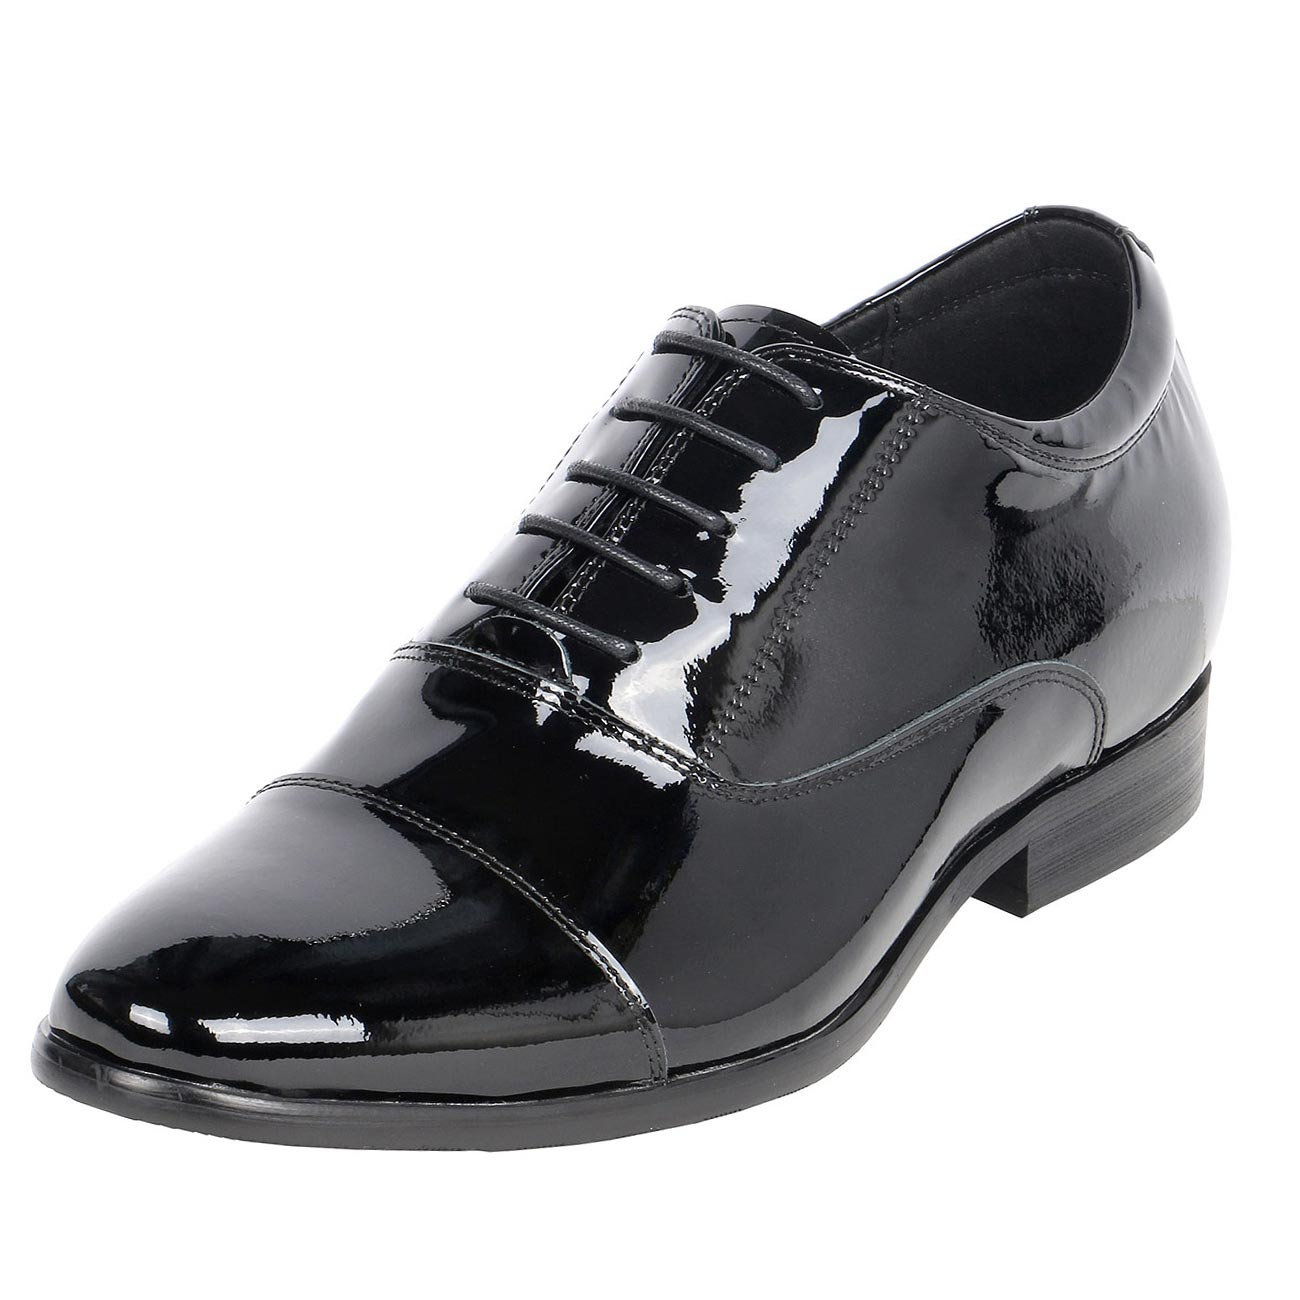 Philadelphia, Built In Height Formal Tall Men Shoes